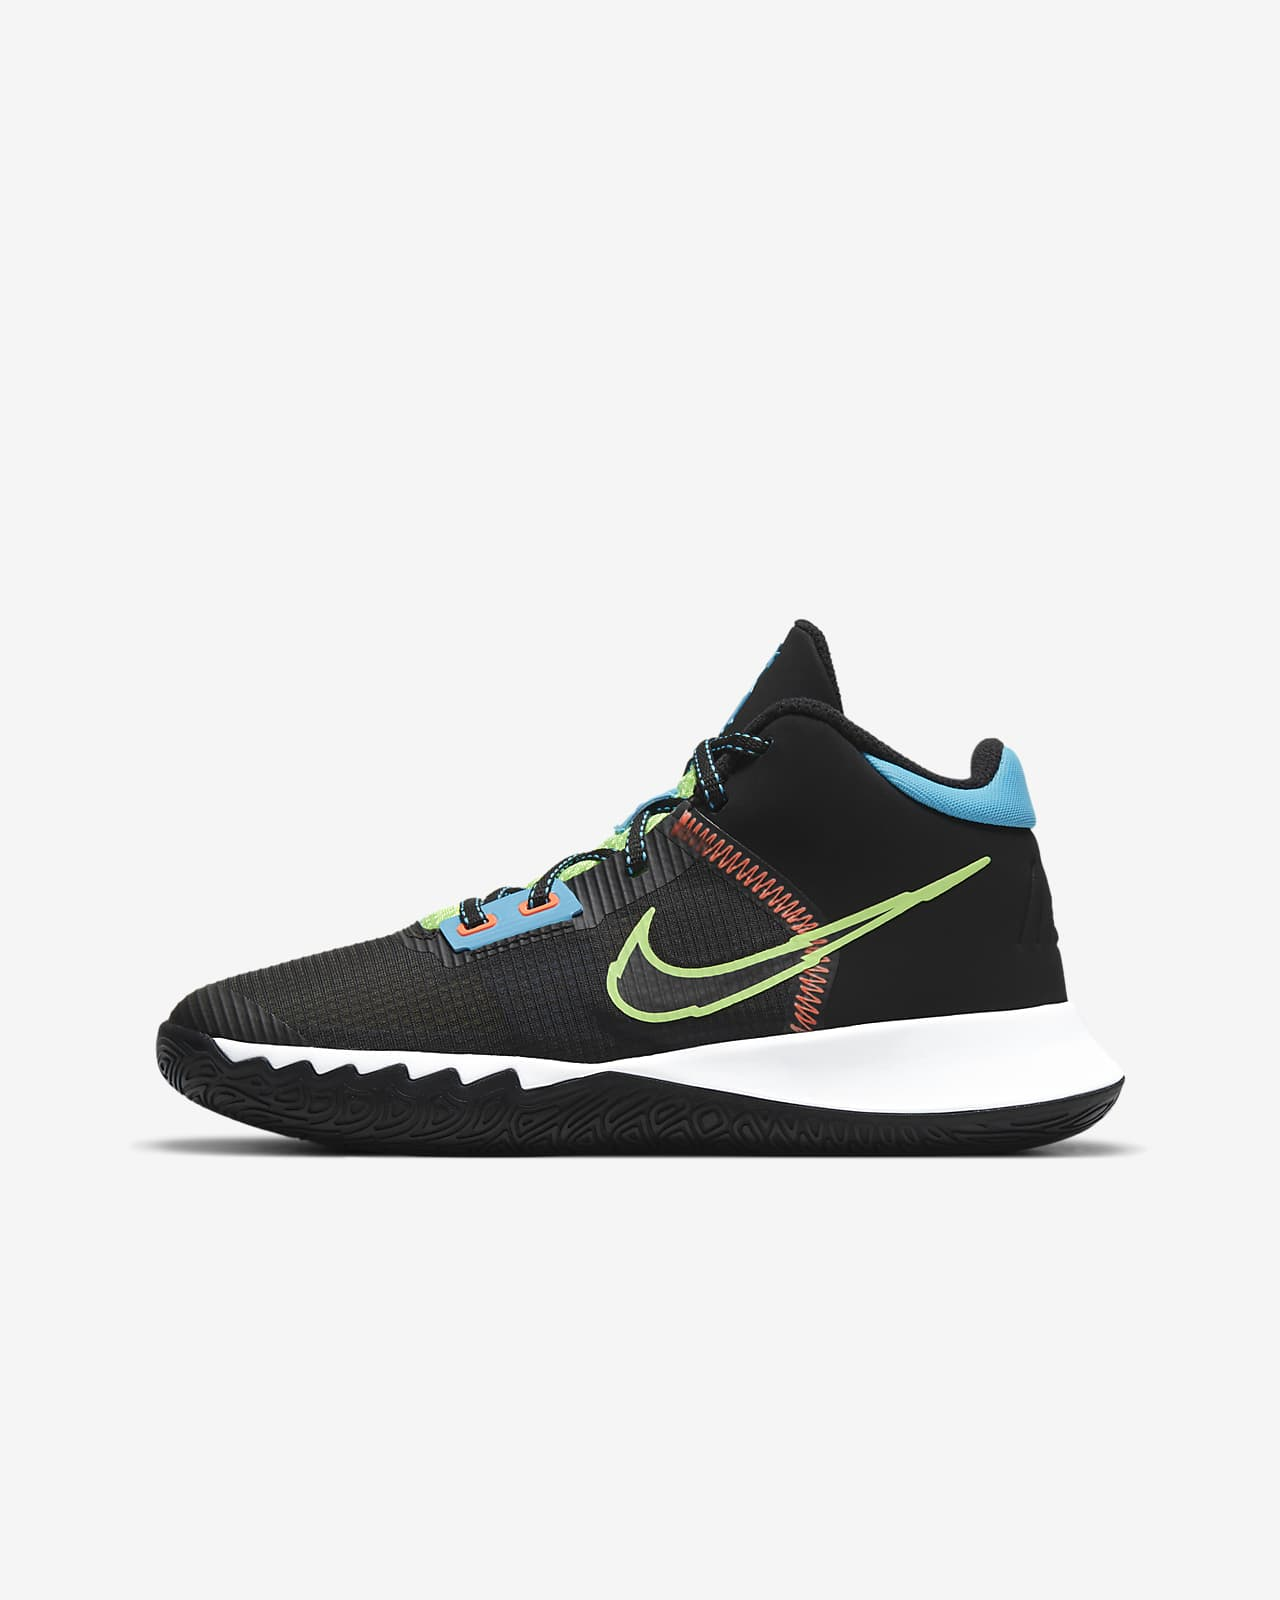 Kyrie Flytrap 4 Big Kids' Basketball Shoe